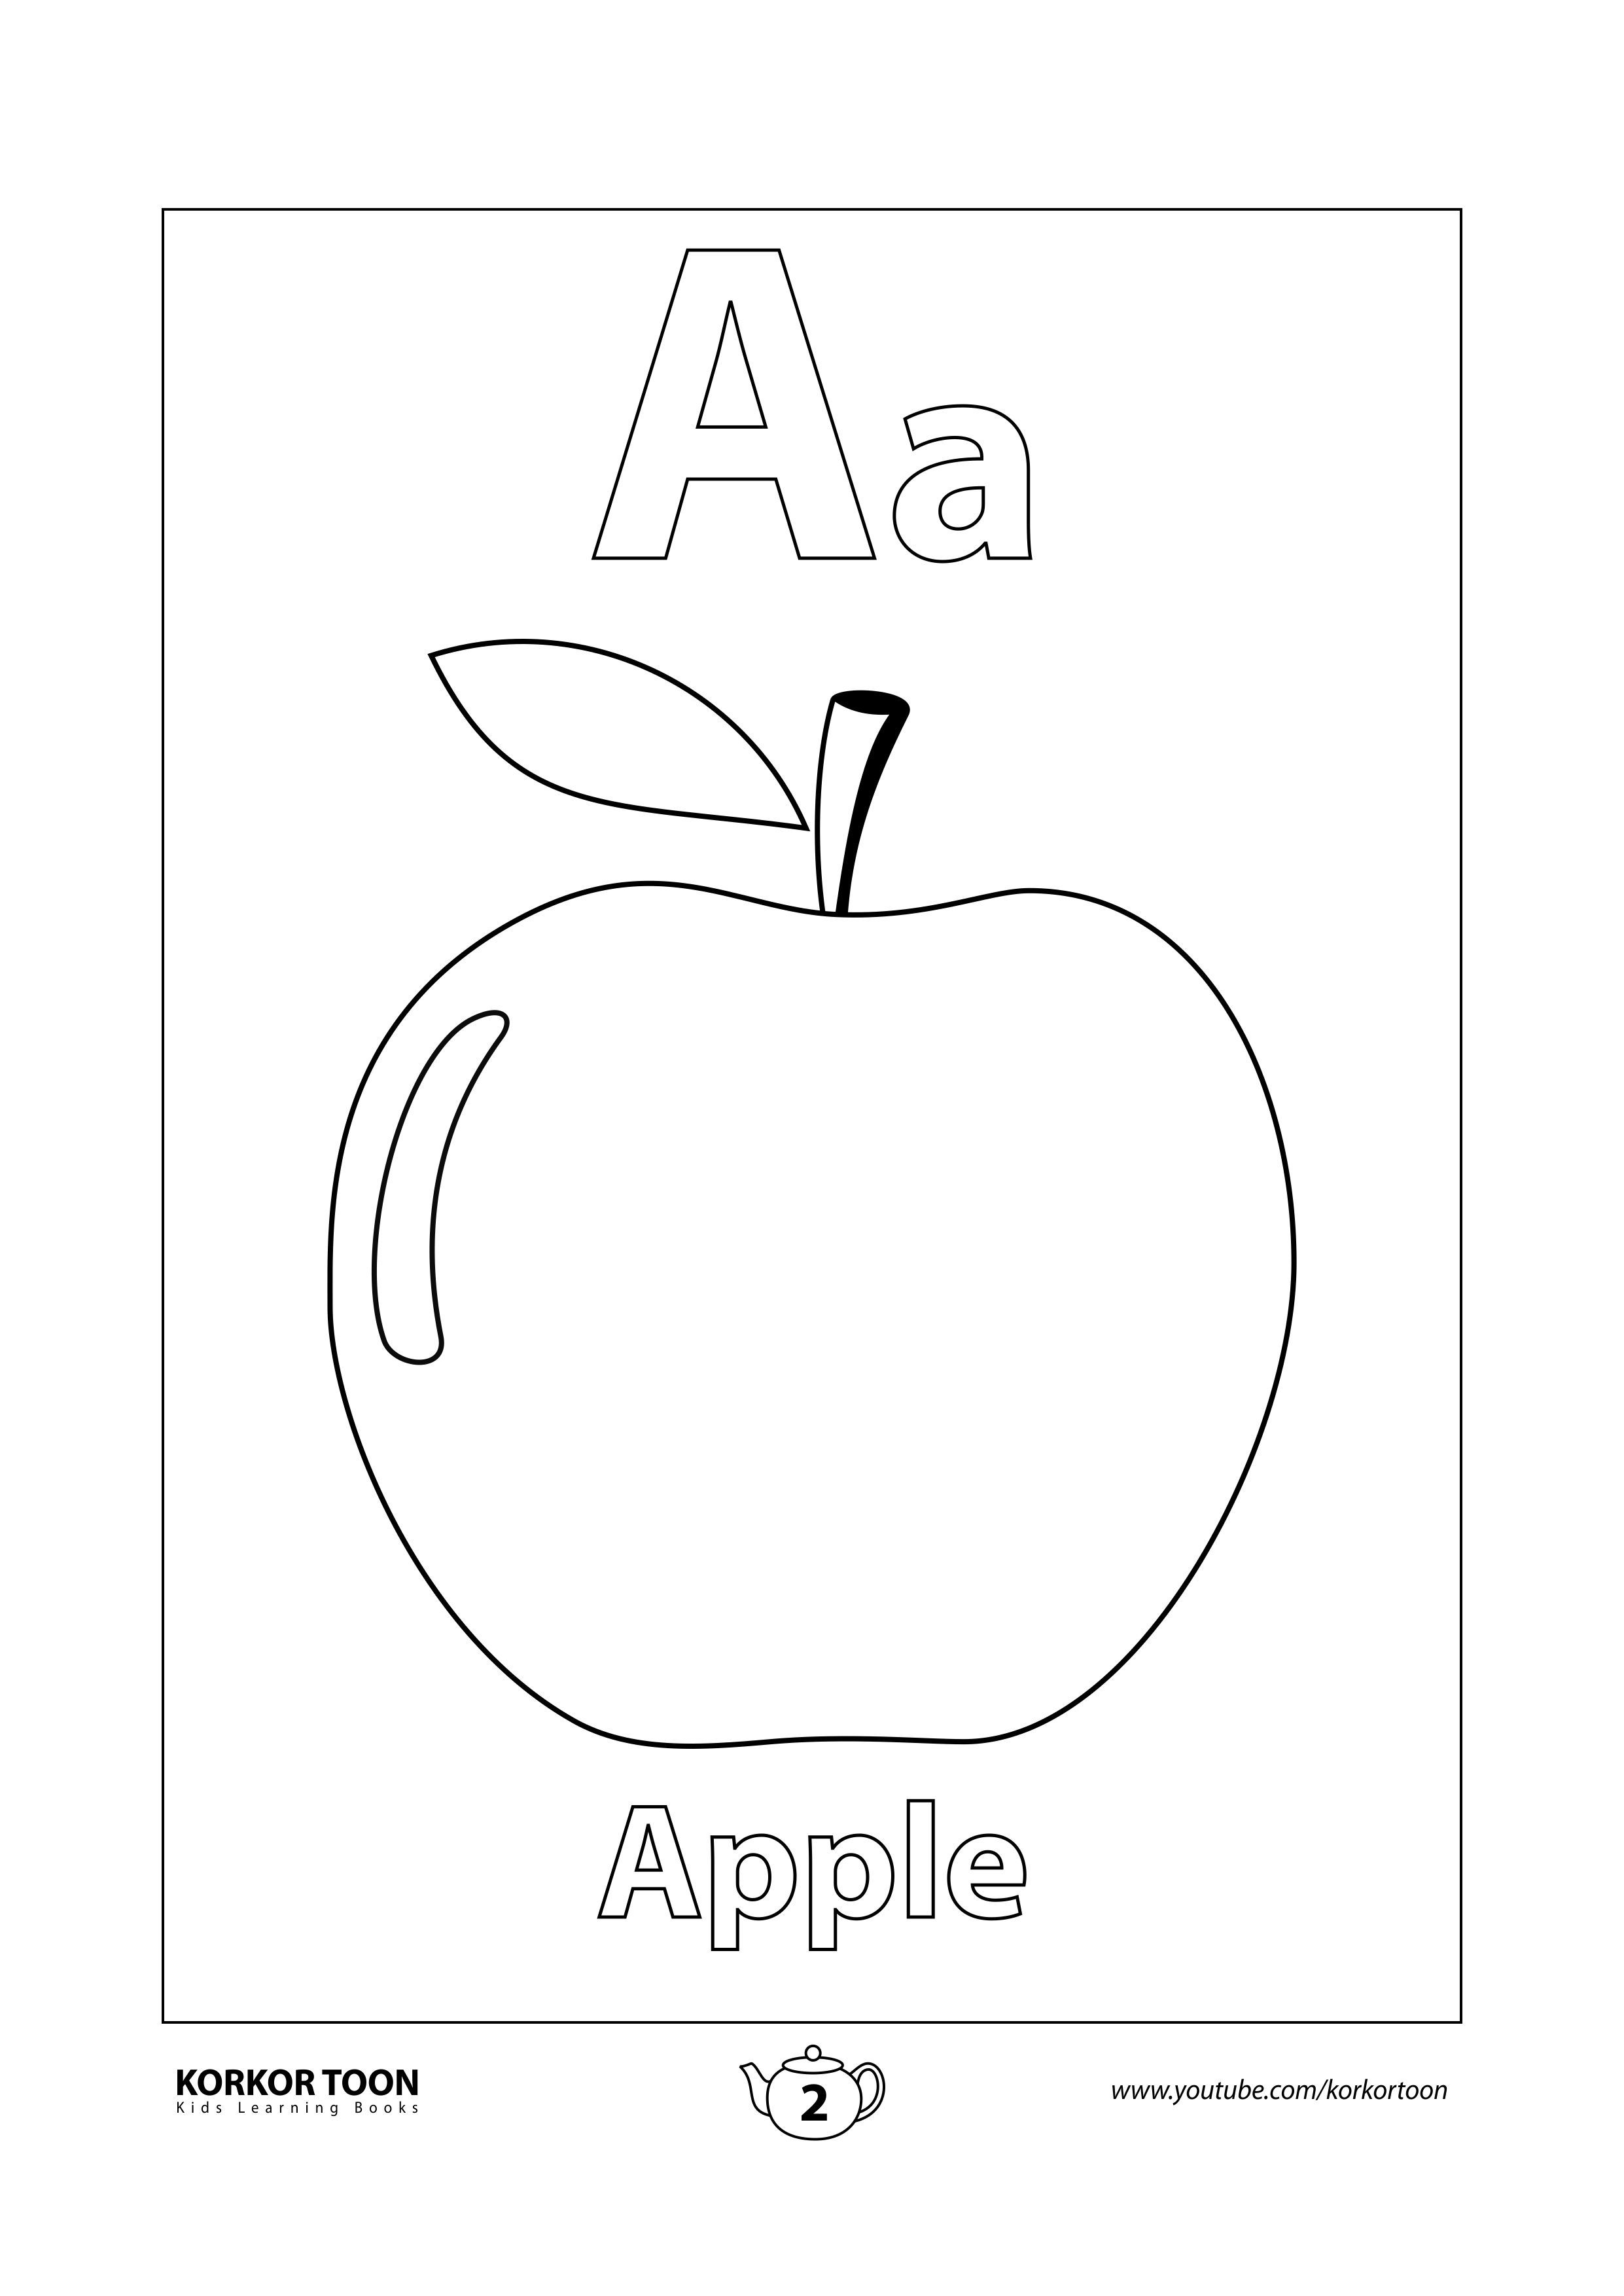 A For Apple Coloring Page Apple Coloring New Apple Coloring Pages Preschool Coloring Pages Fruits Coloring Pages